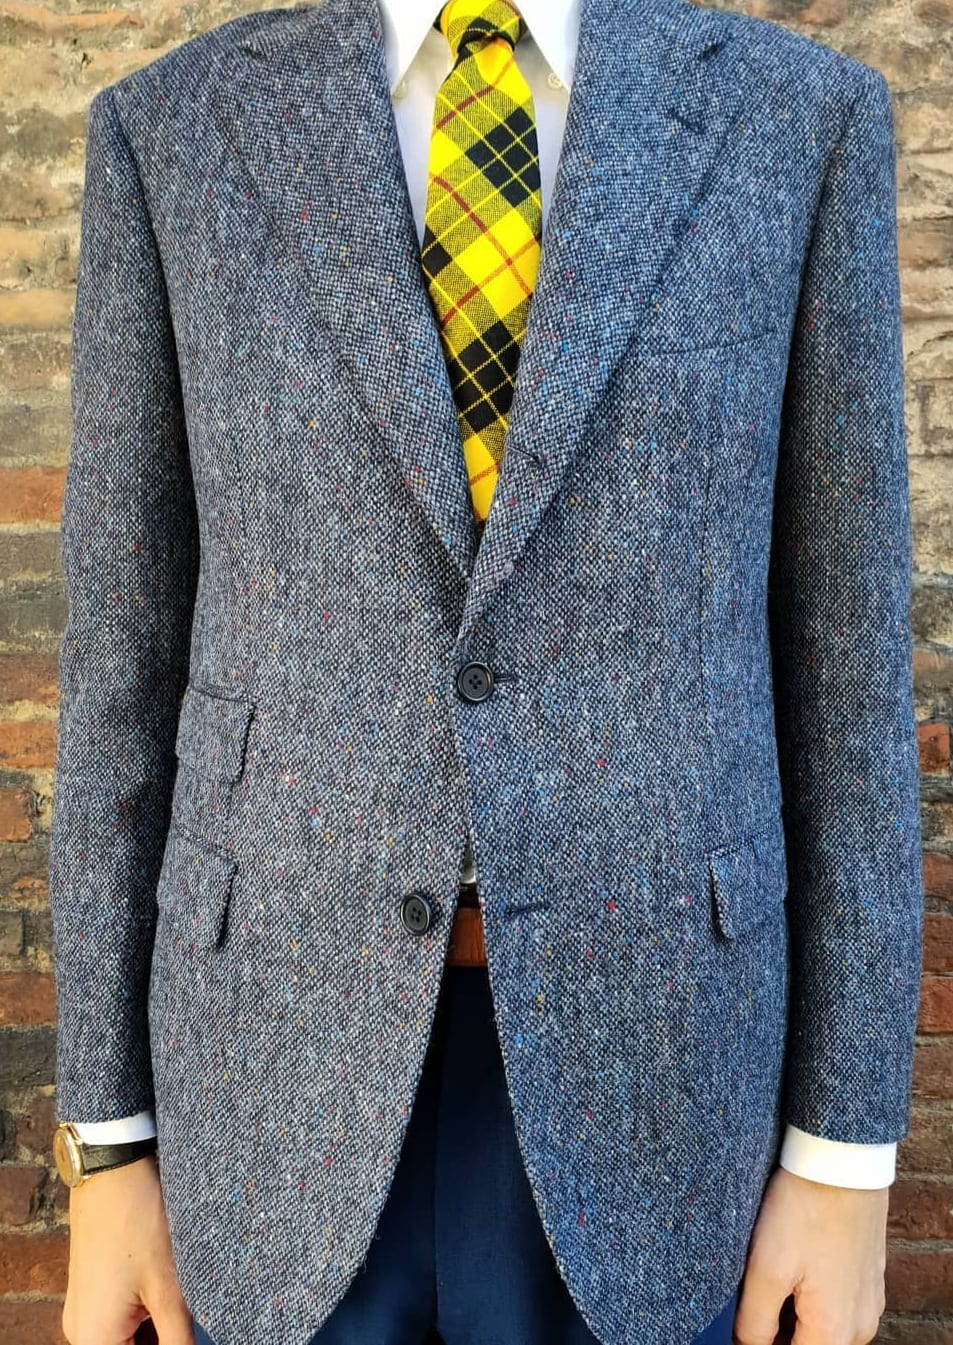 Tweed Blue Jacket Outfit for Men